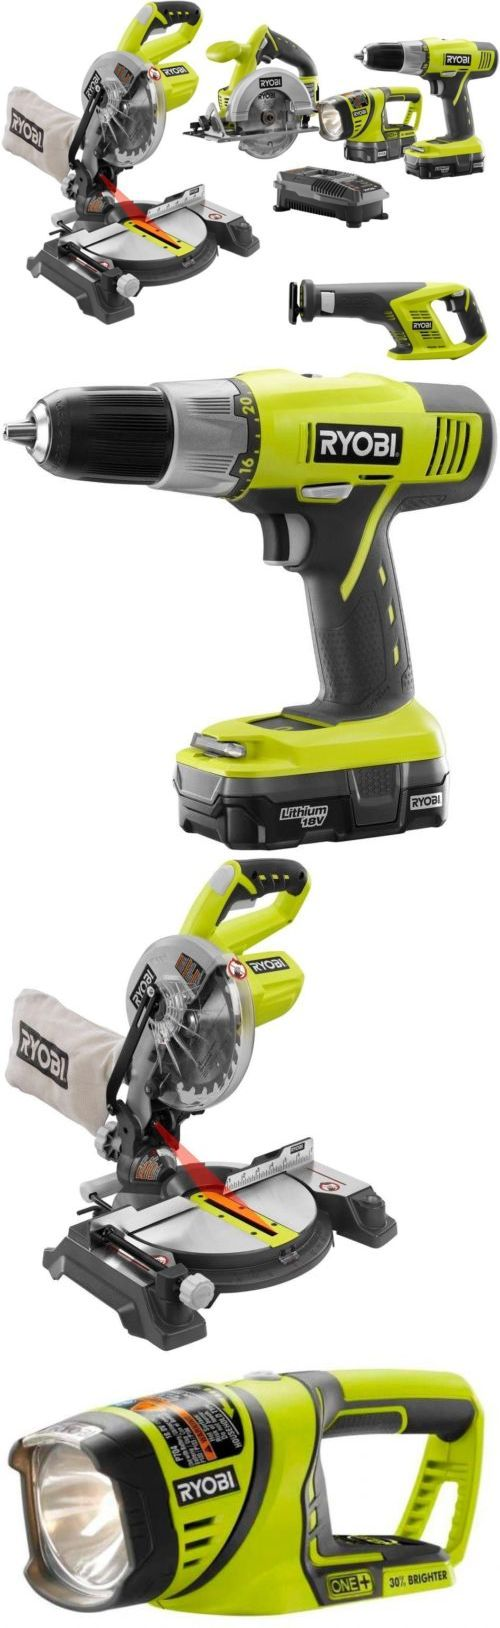 Combination Sets 177000: Ryobi One+ 18-Volt Lithium-Ion Cordless Combo Kit With Miter Saw (5-Tool) No Tax -> BUY IT NOW ONLY: $249.17 on eBay!